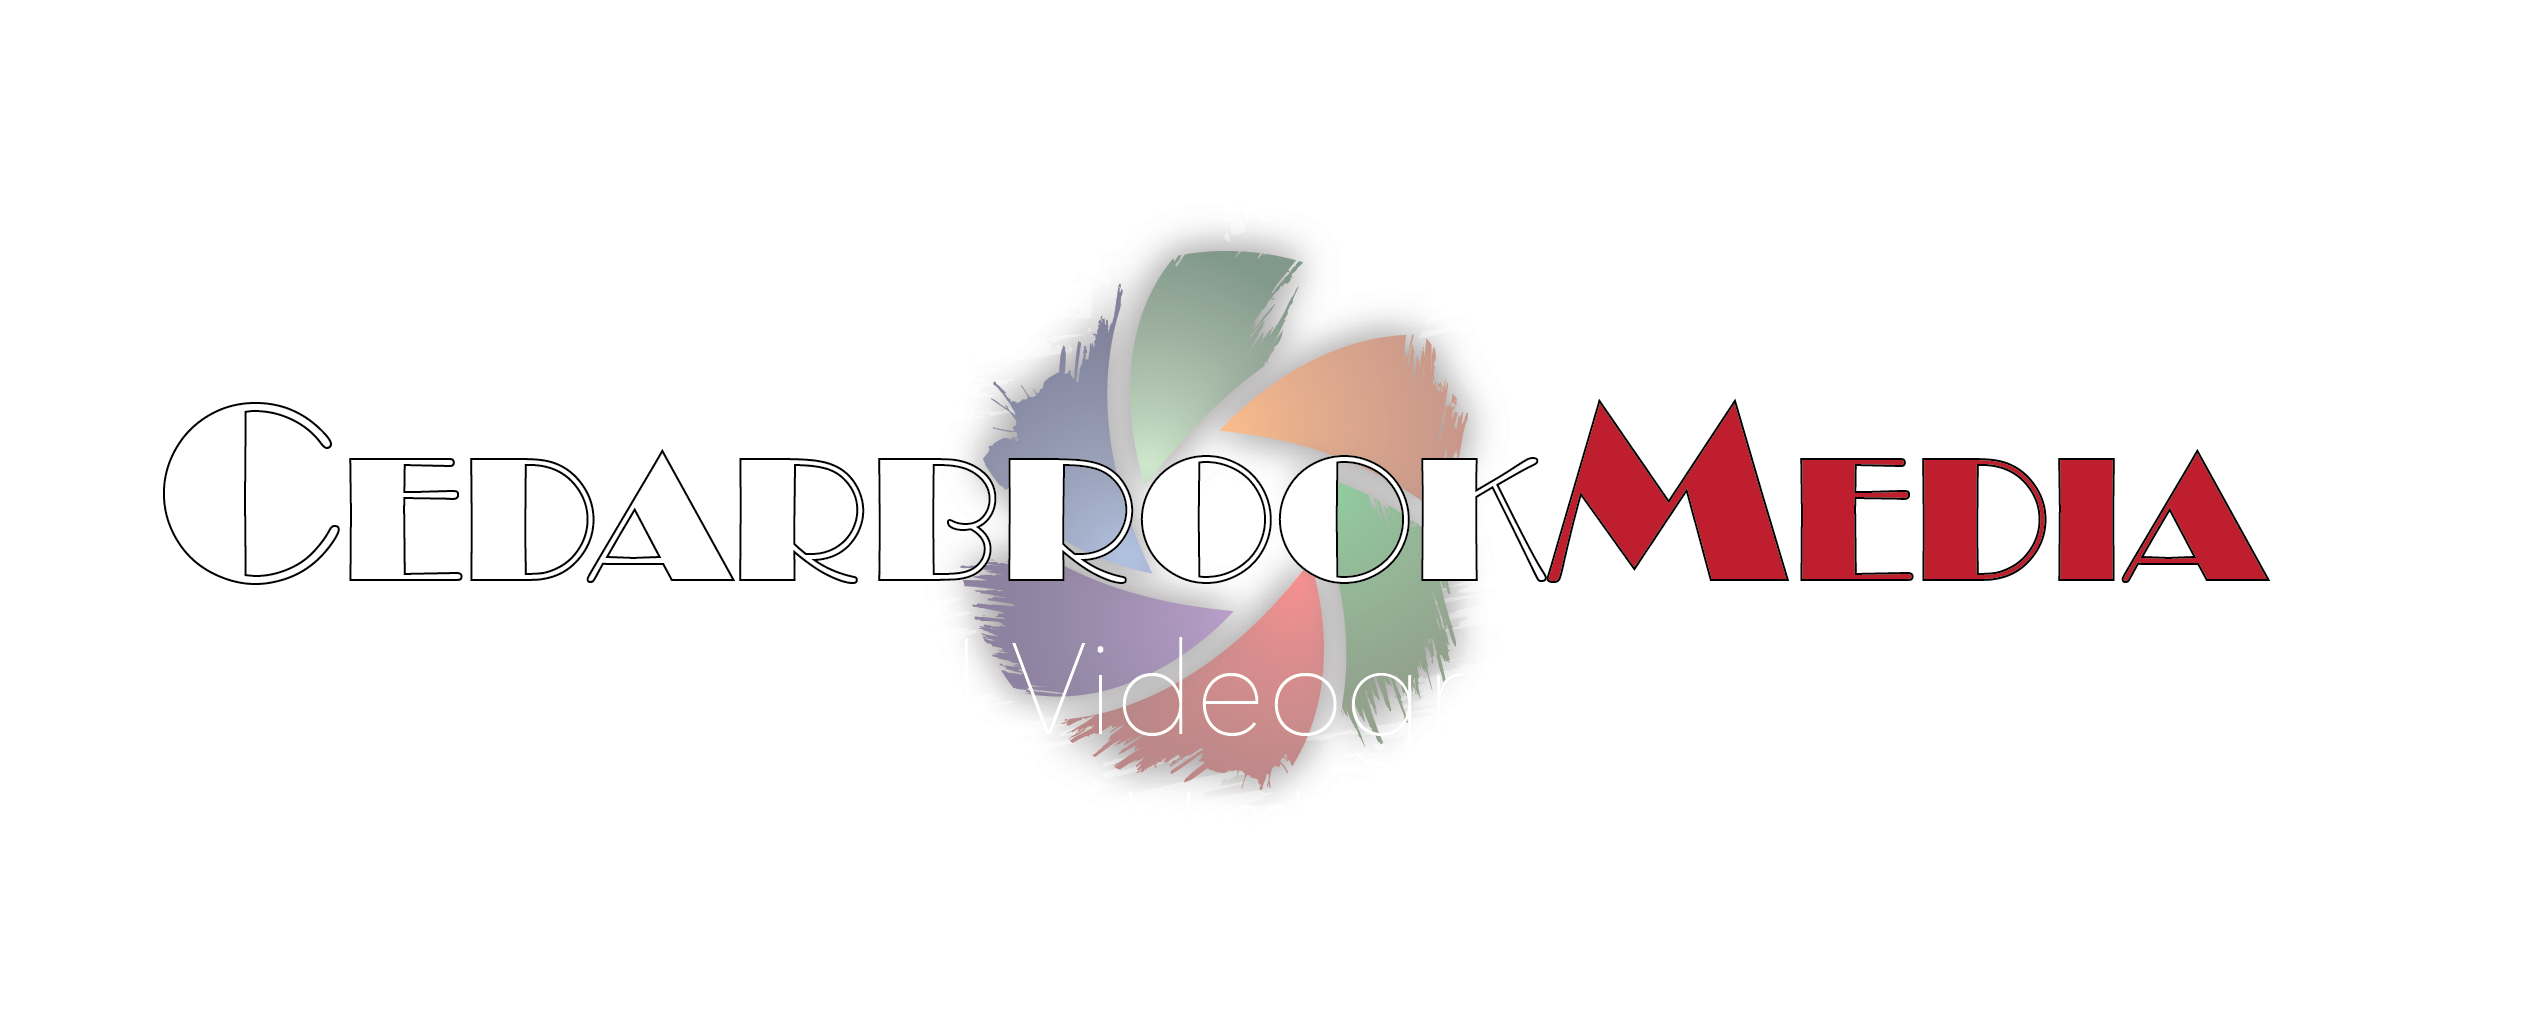 Cedarbrook Media Group, LLC